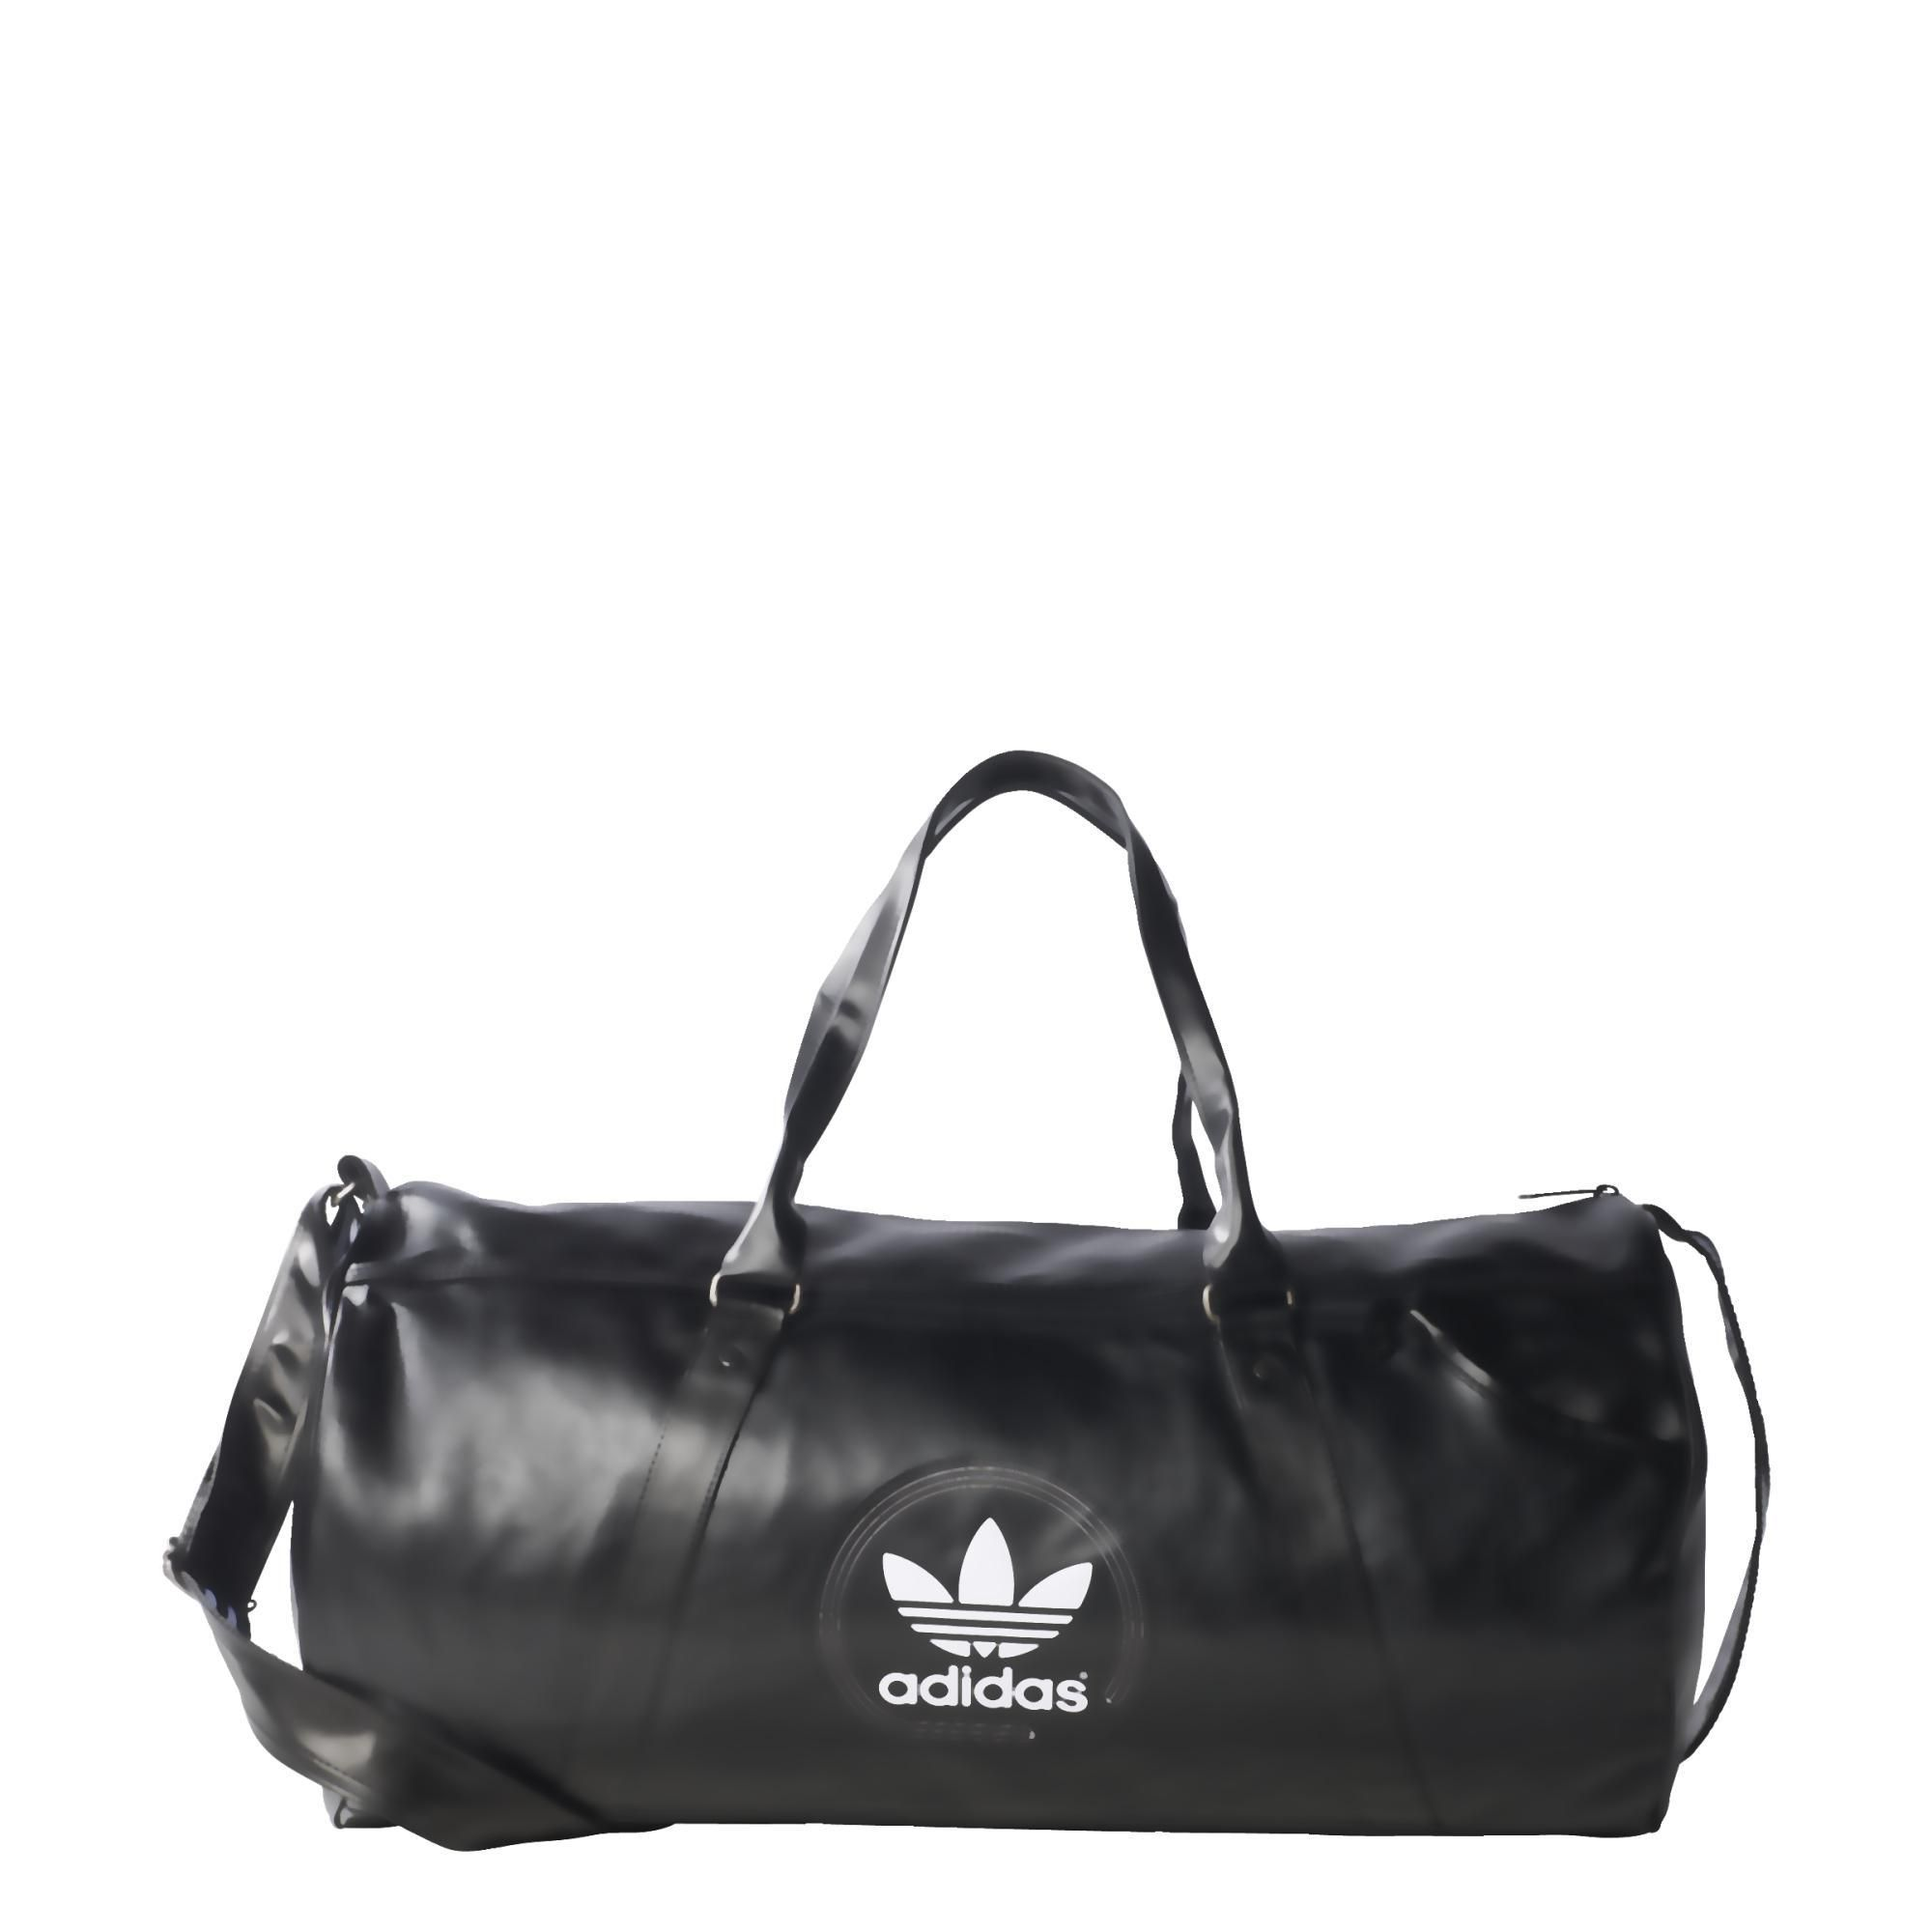 adidas+Originals+Duffel+Bag+Perforated+Bag | Packs W